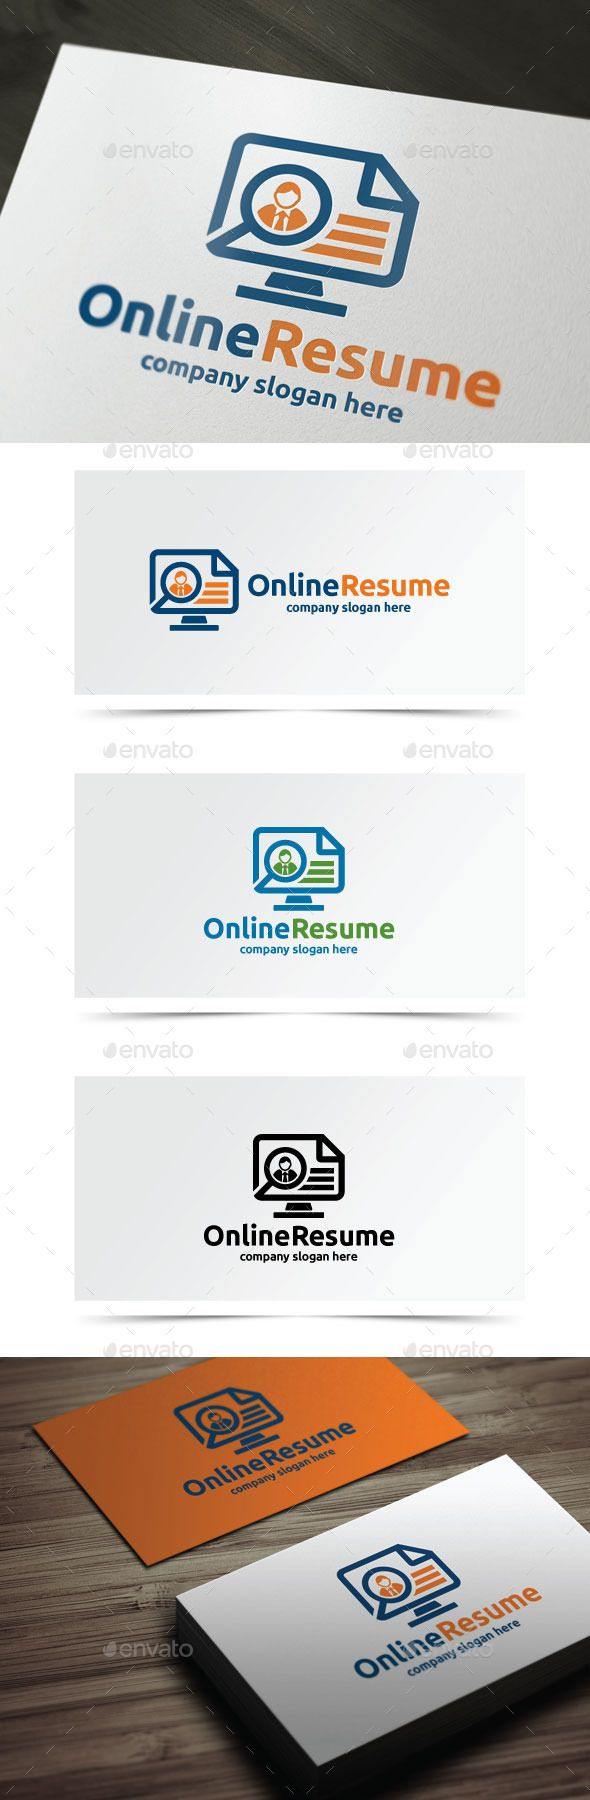 impressive objective for resume%0A Online Resume  u     Photoshop PSD  work history  assistant  u     Available here      https